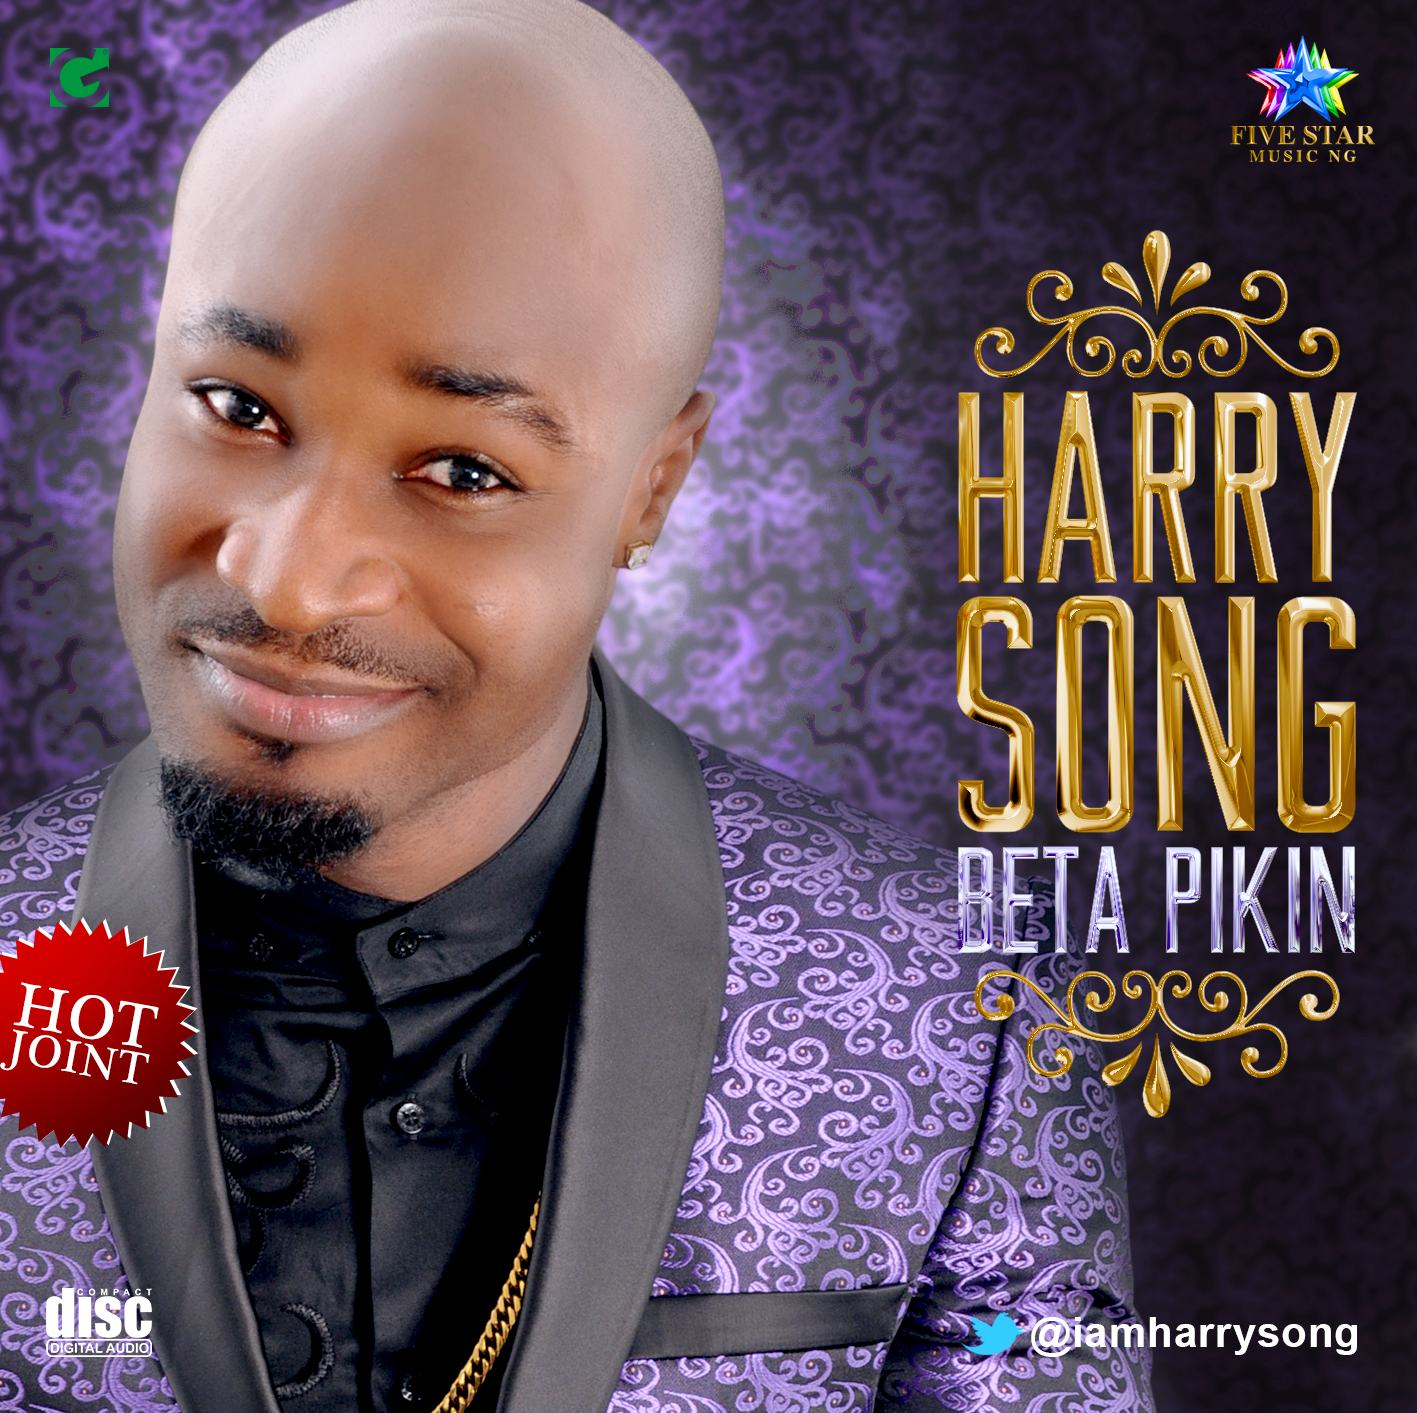 HarrySong - Beta Pikin [AuDio]